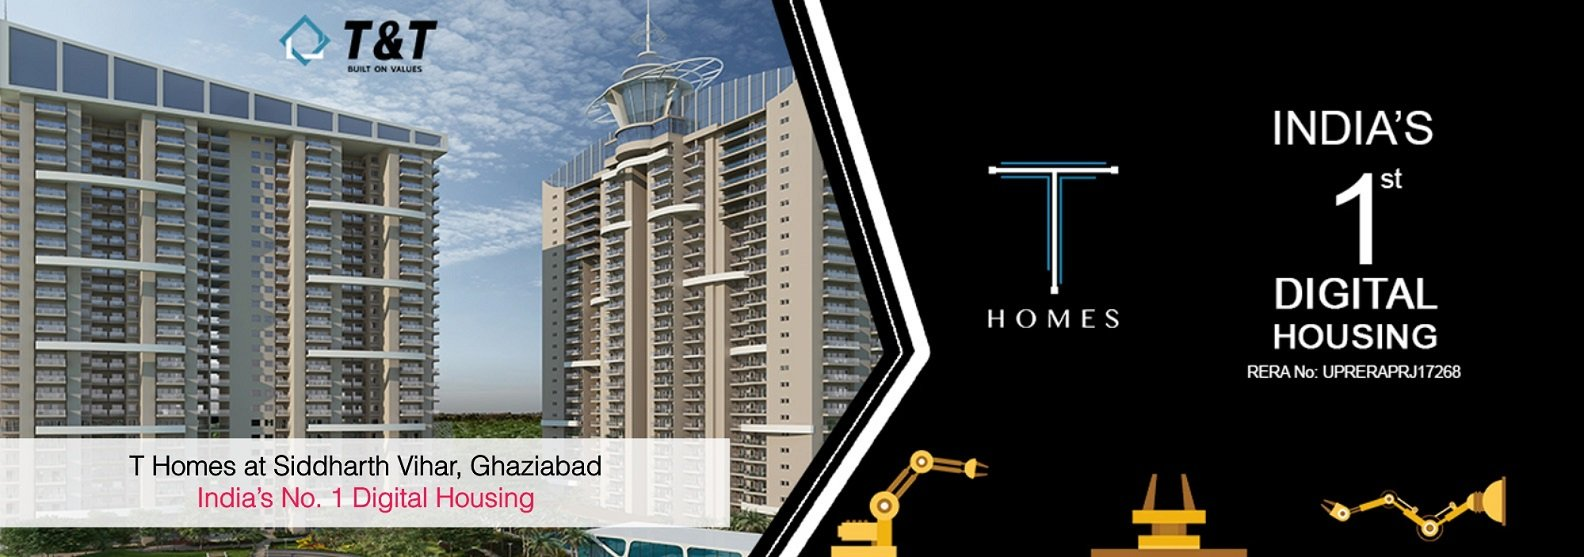 /3 BHK Flats in Ghaziabad- T Homes